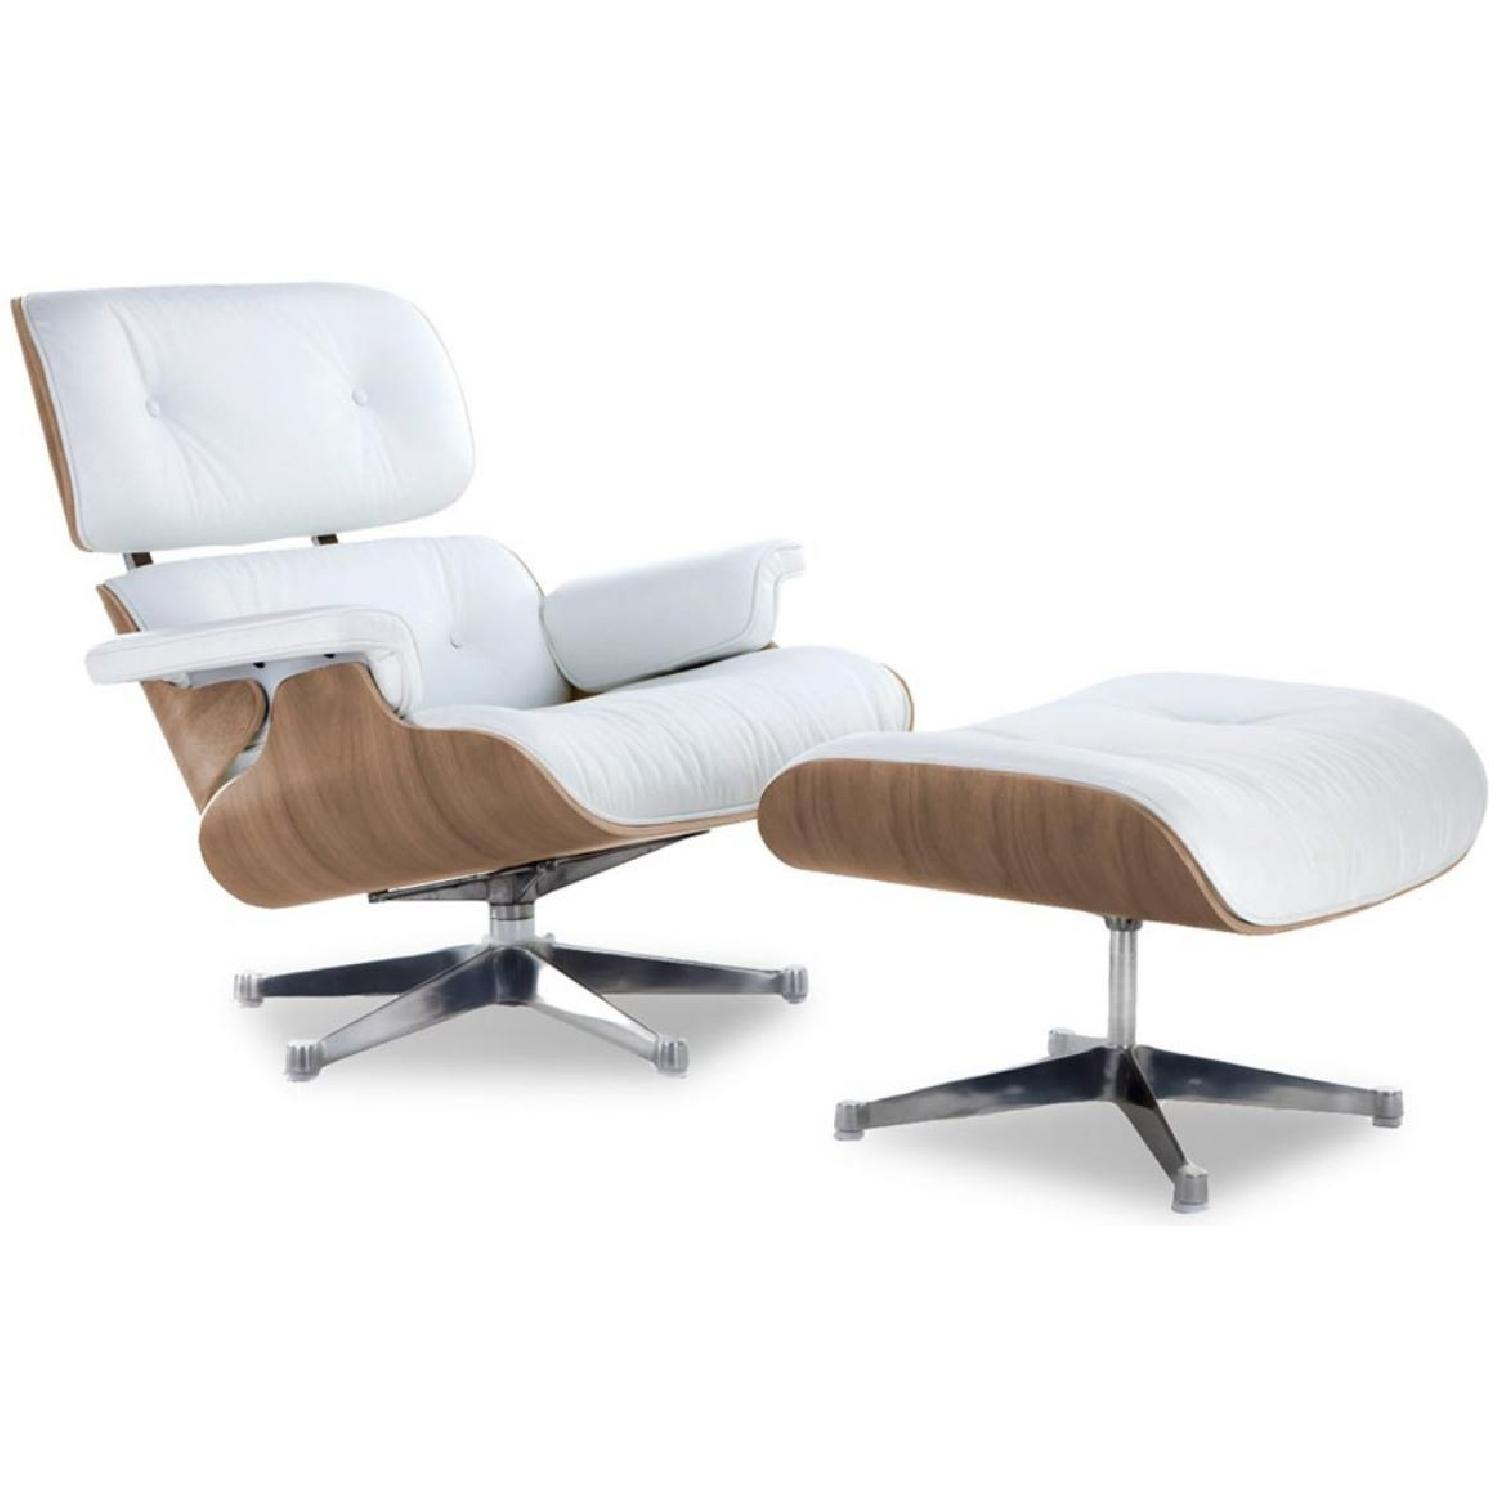 Eames Lounge Sessel White Italian Leather Eames Lounge Chair Replica Ottoman